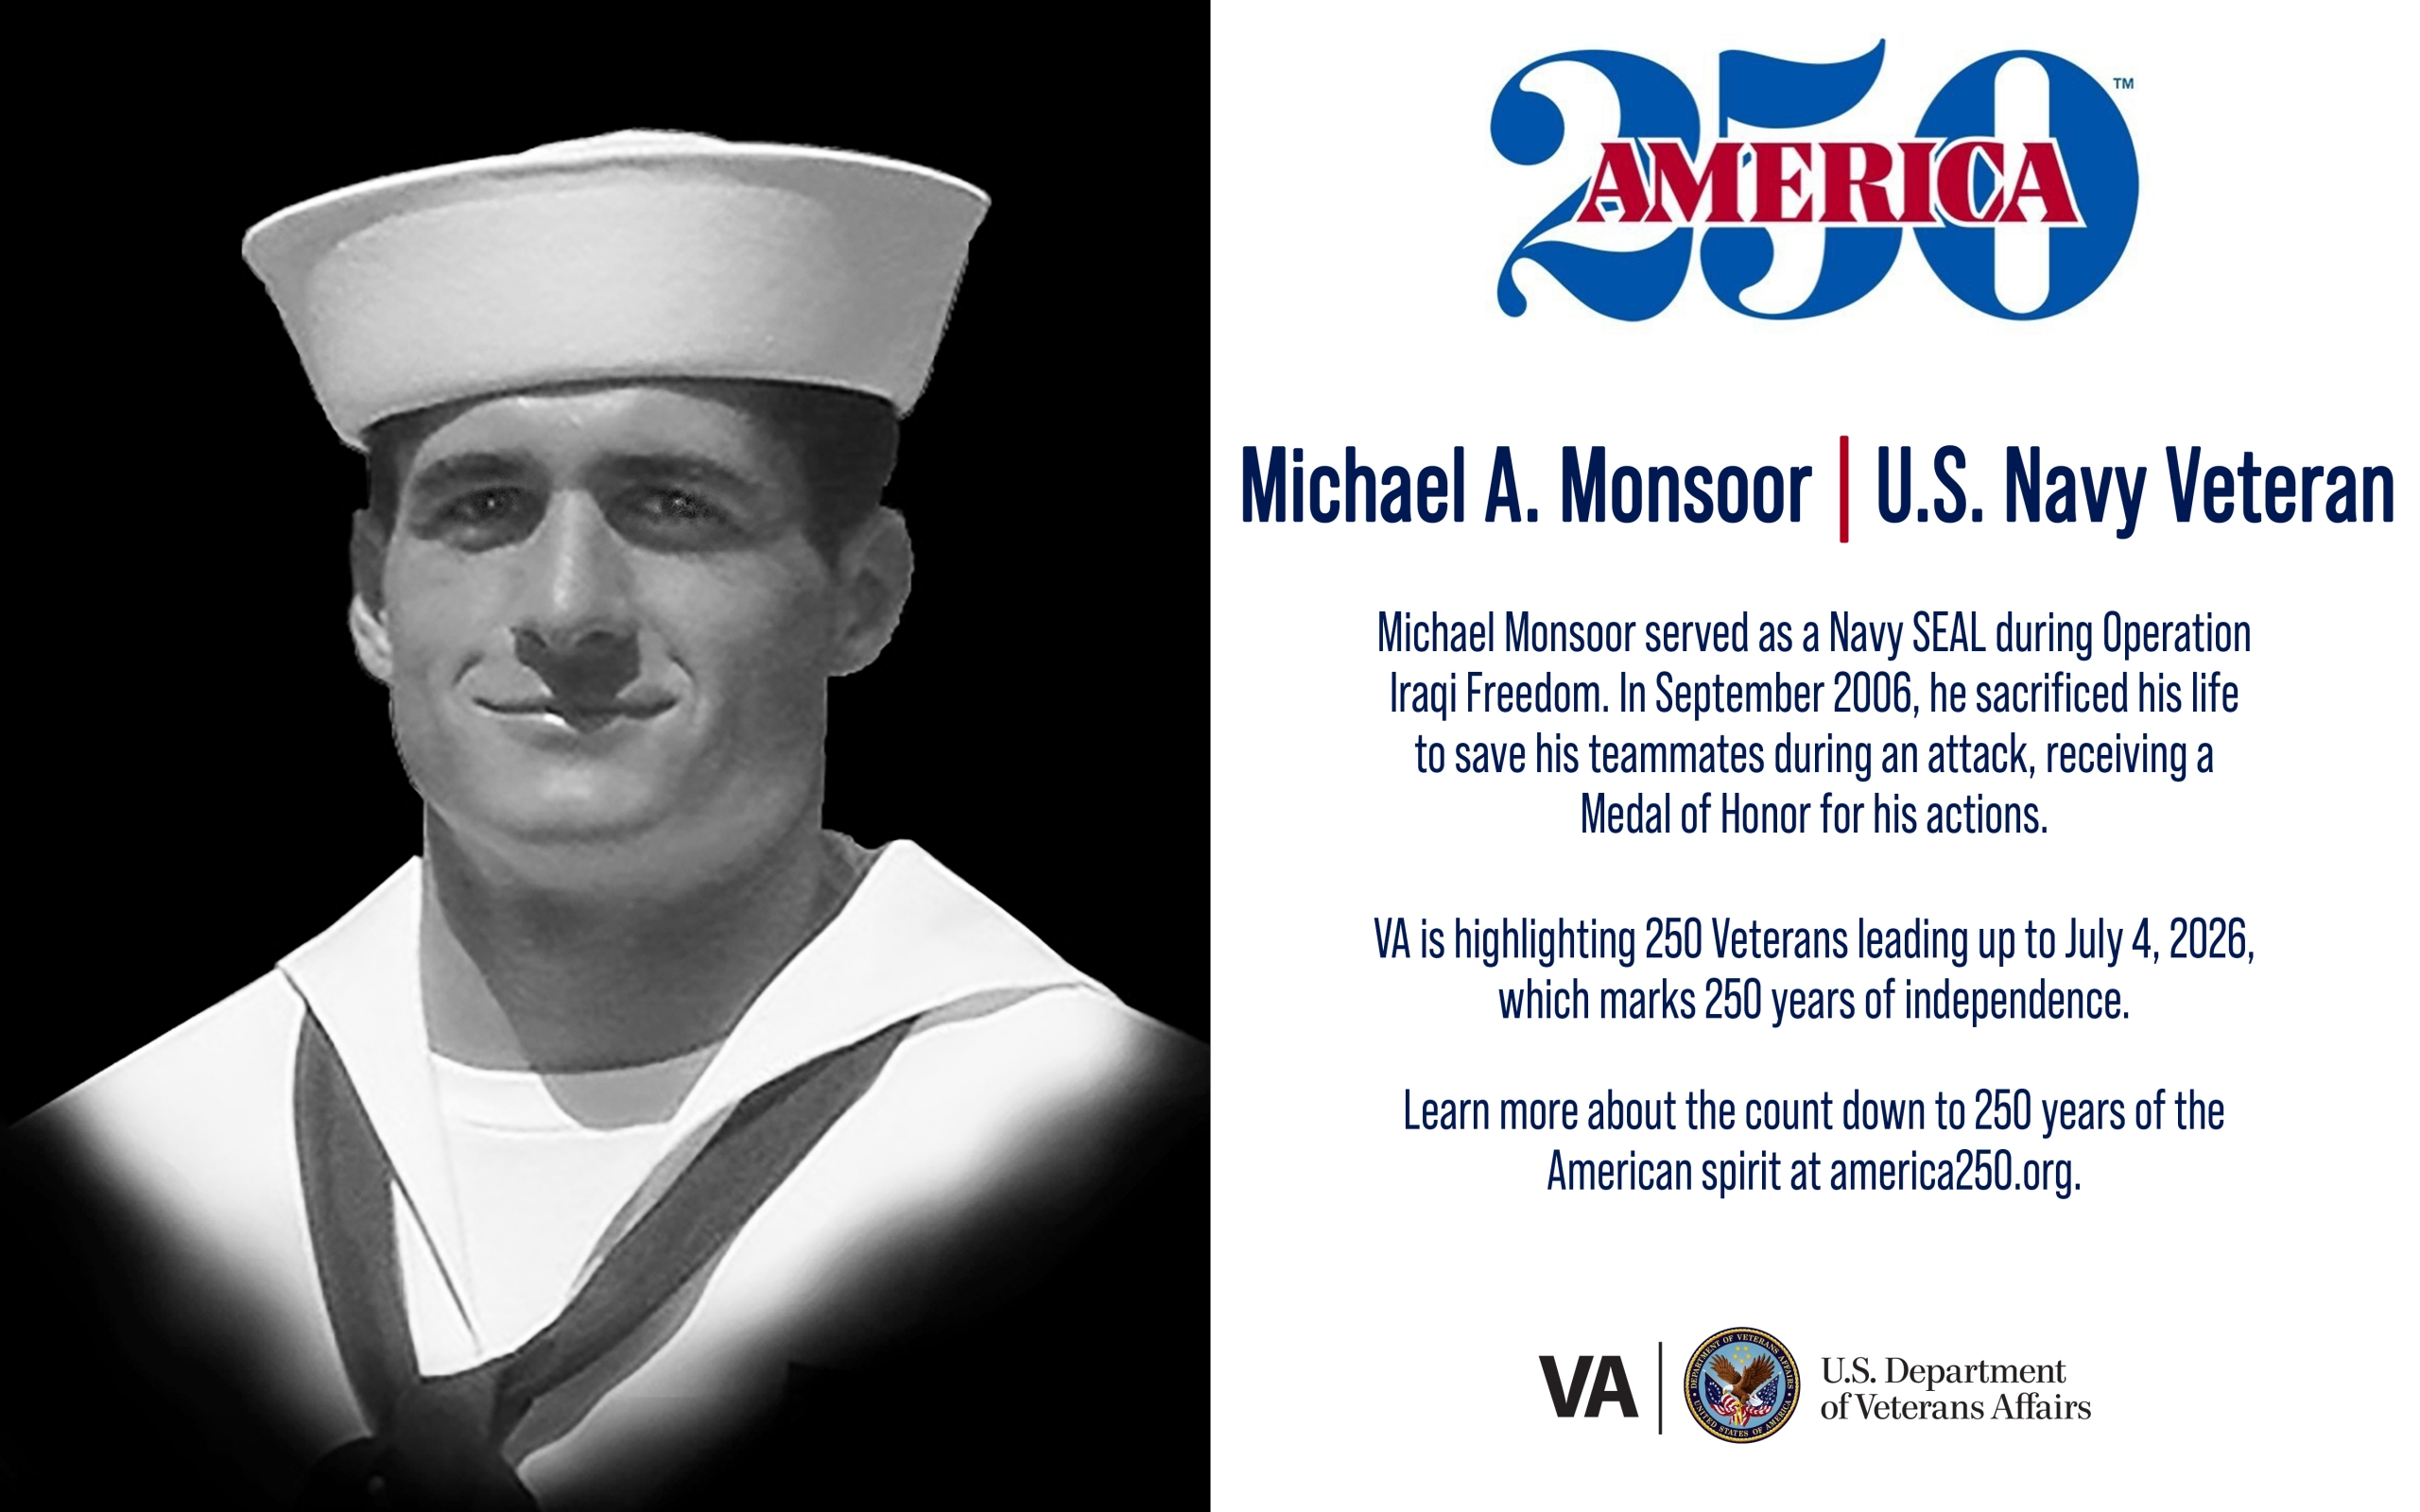 This week's America250 salute is Navy Veteran Michael Monsoor who served as a SEAL during Operation Iraqi Freedom and posthumously received a Medal of Honor.